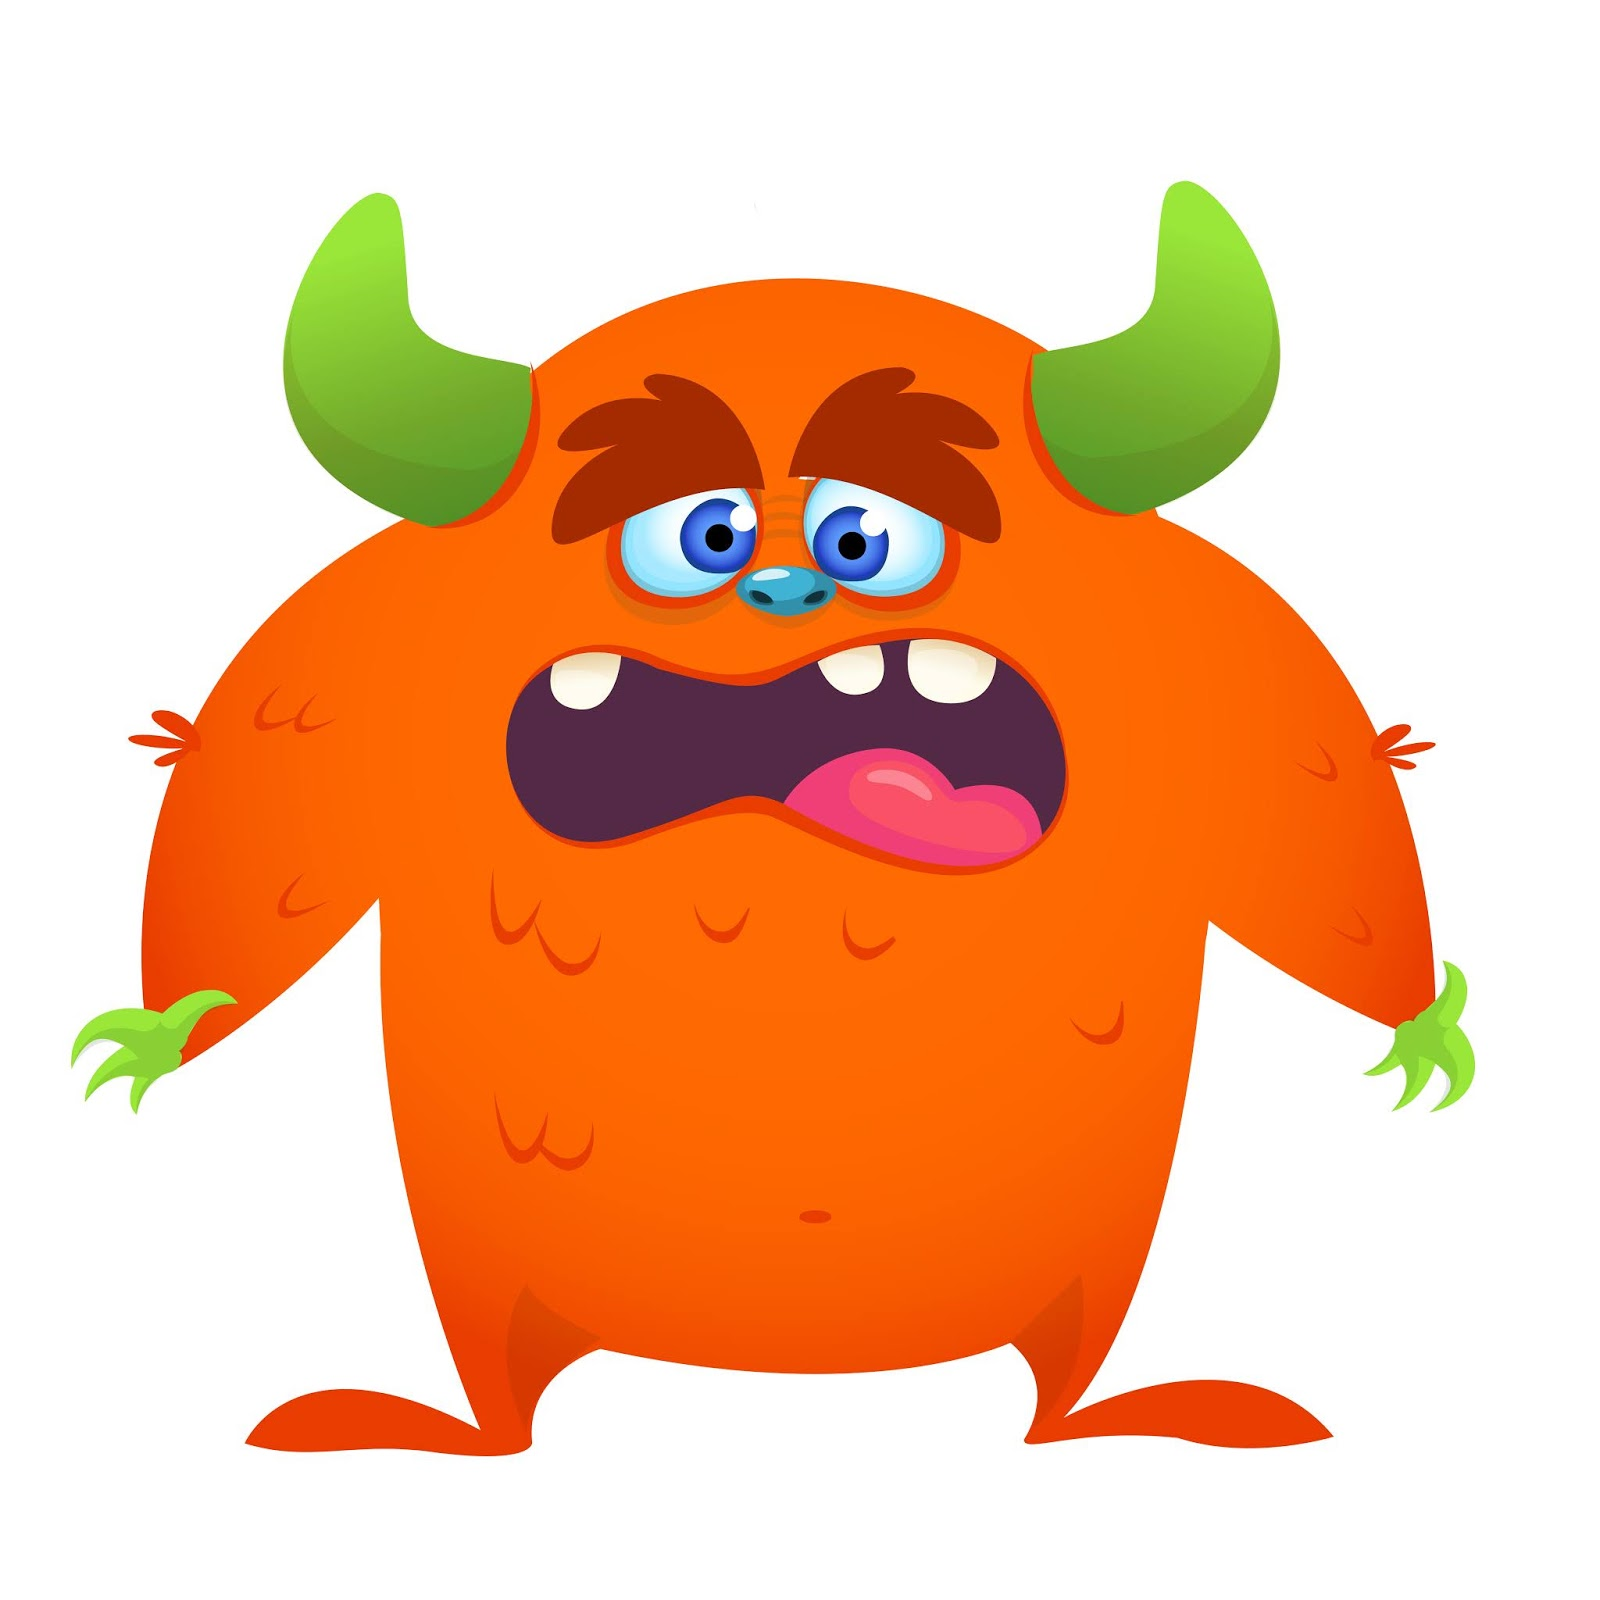 Shocked Cartoon Monster Illustration Free Download Vector CDR, AI, EPS and PNG Formats